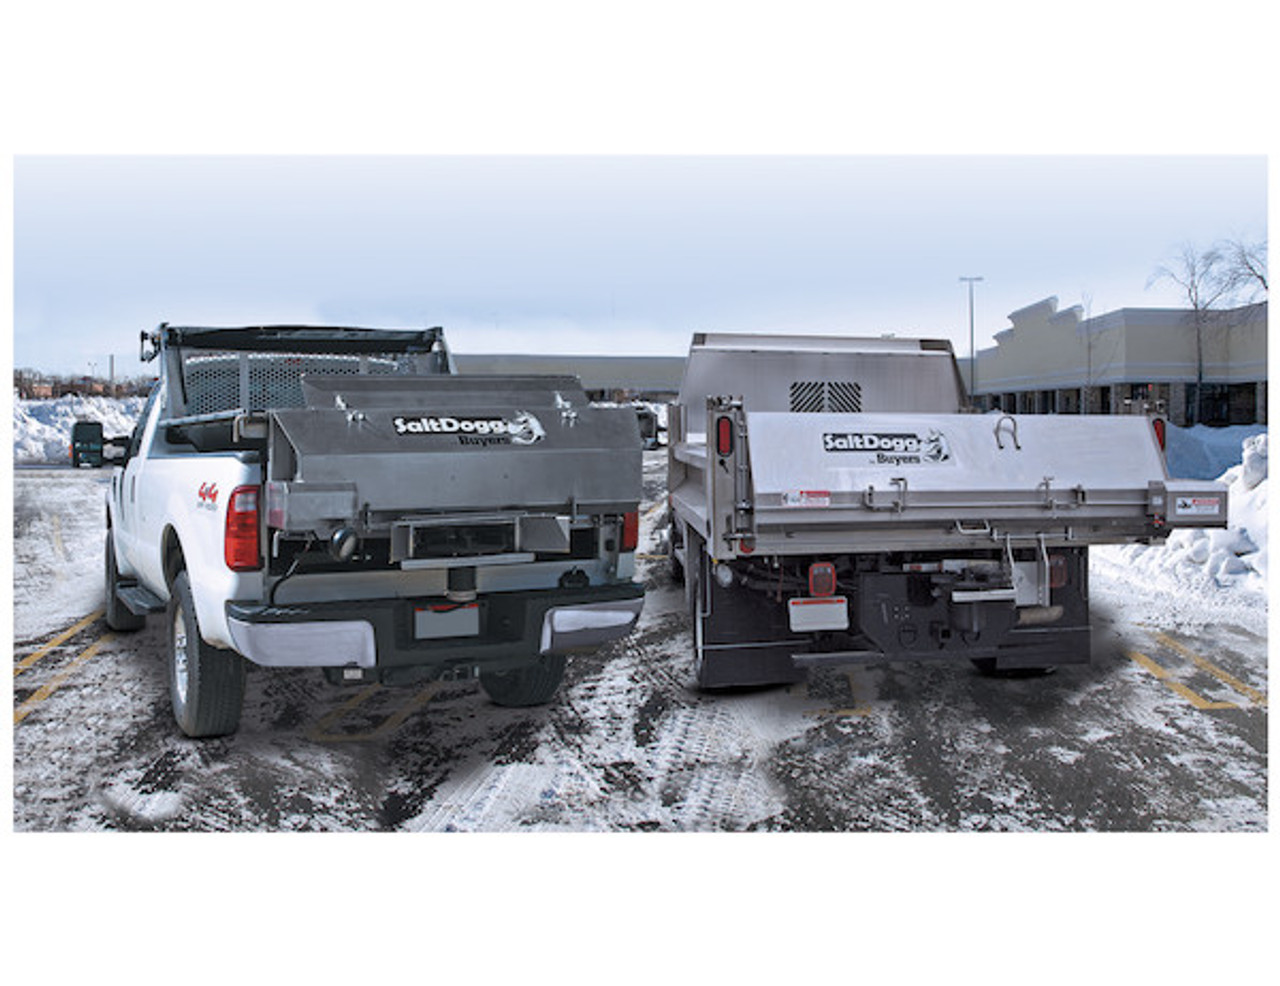 9035101 BUYERS SALTDOGG ELECTRIC REPLACEMENT TAILGATE SALT SPREADER WITH DRIVERS SIDE DISCHARGE